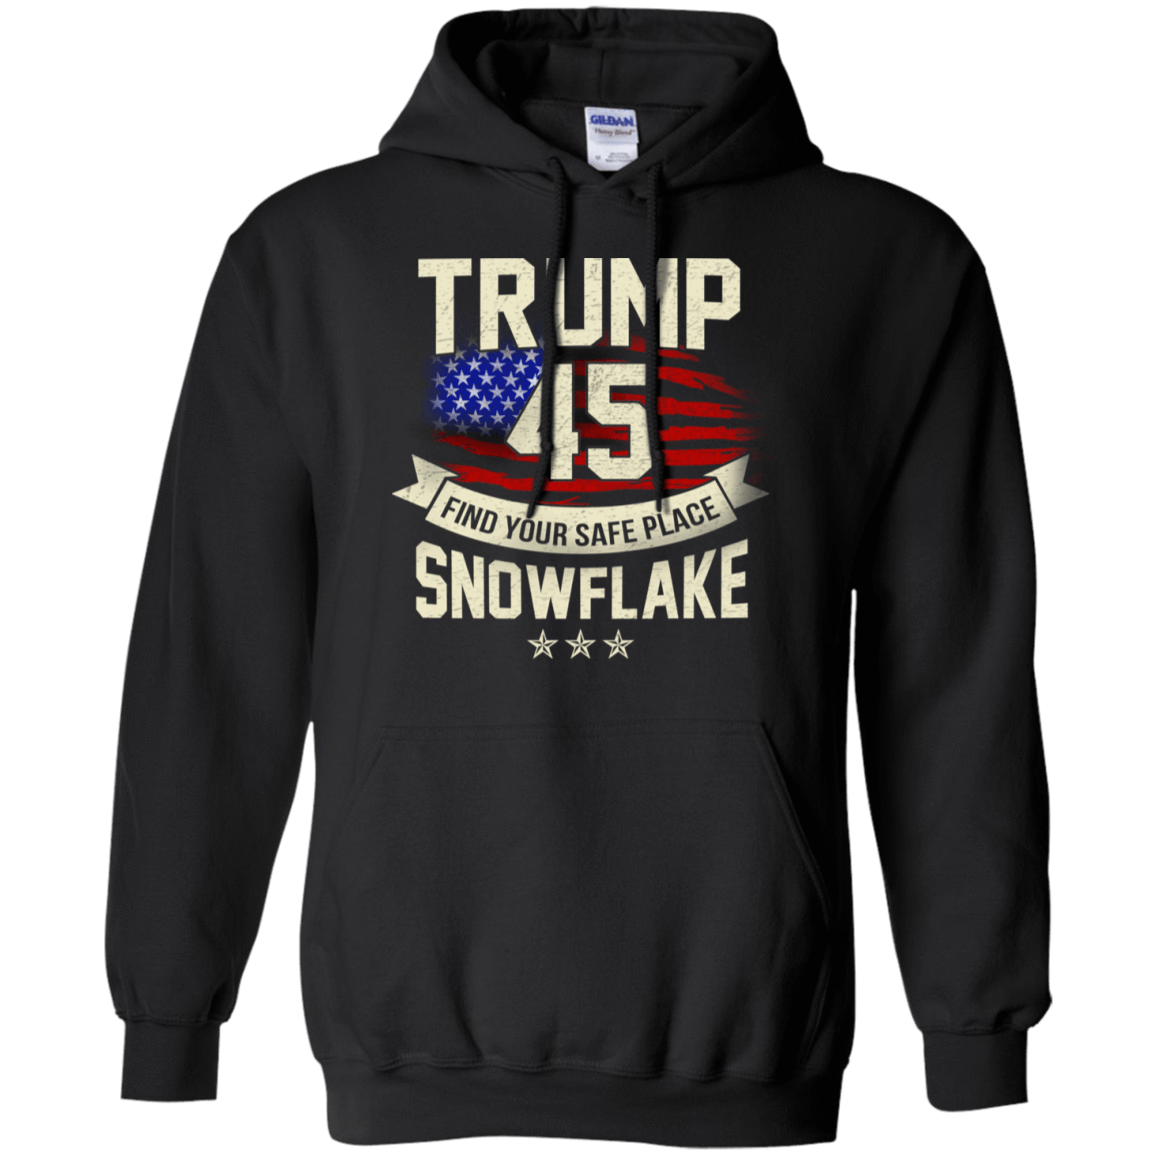 Donald Trump 45 Find Your Safe Place Snowflake T-Shirts, Hoodie, Tank 541-4740-78128268-23087 - Tee Ript